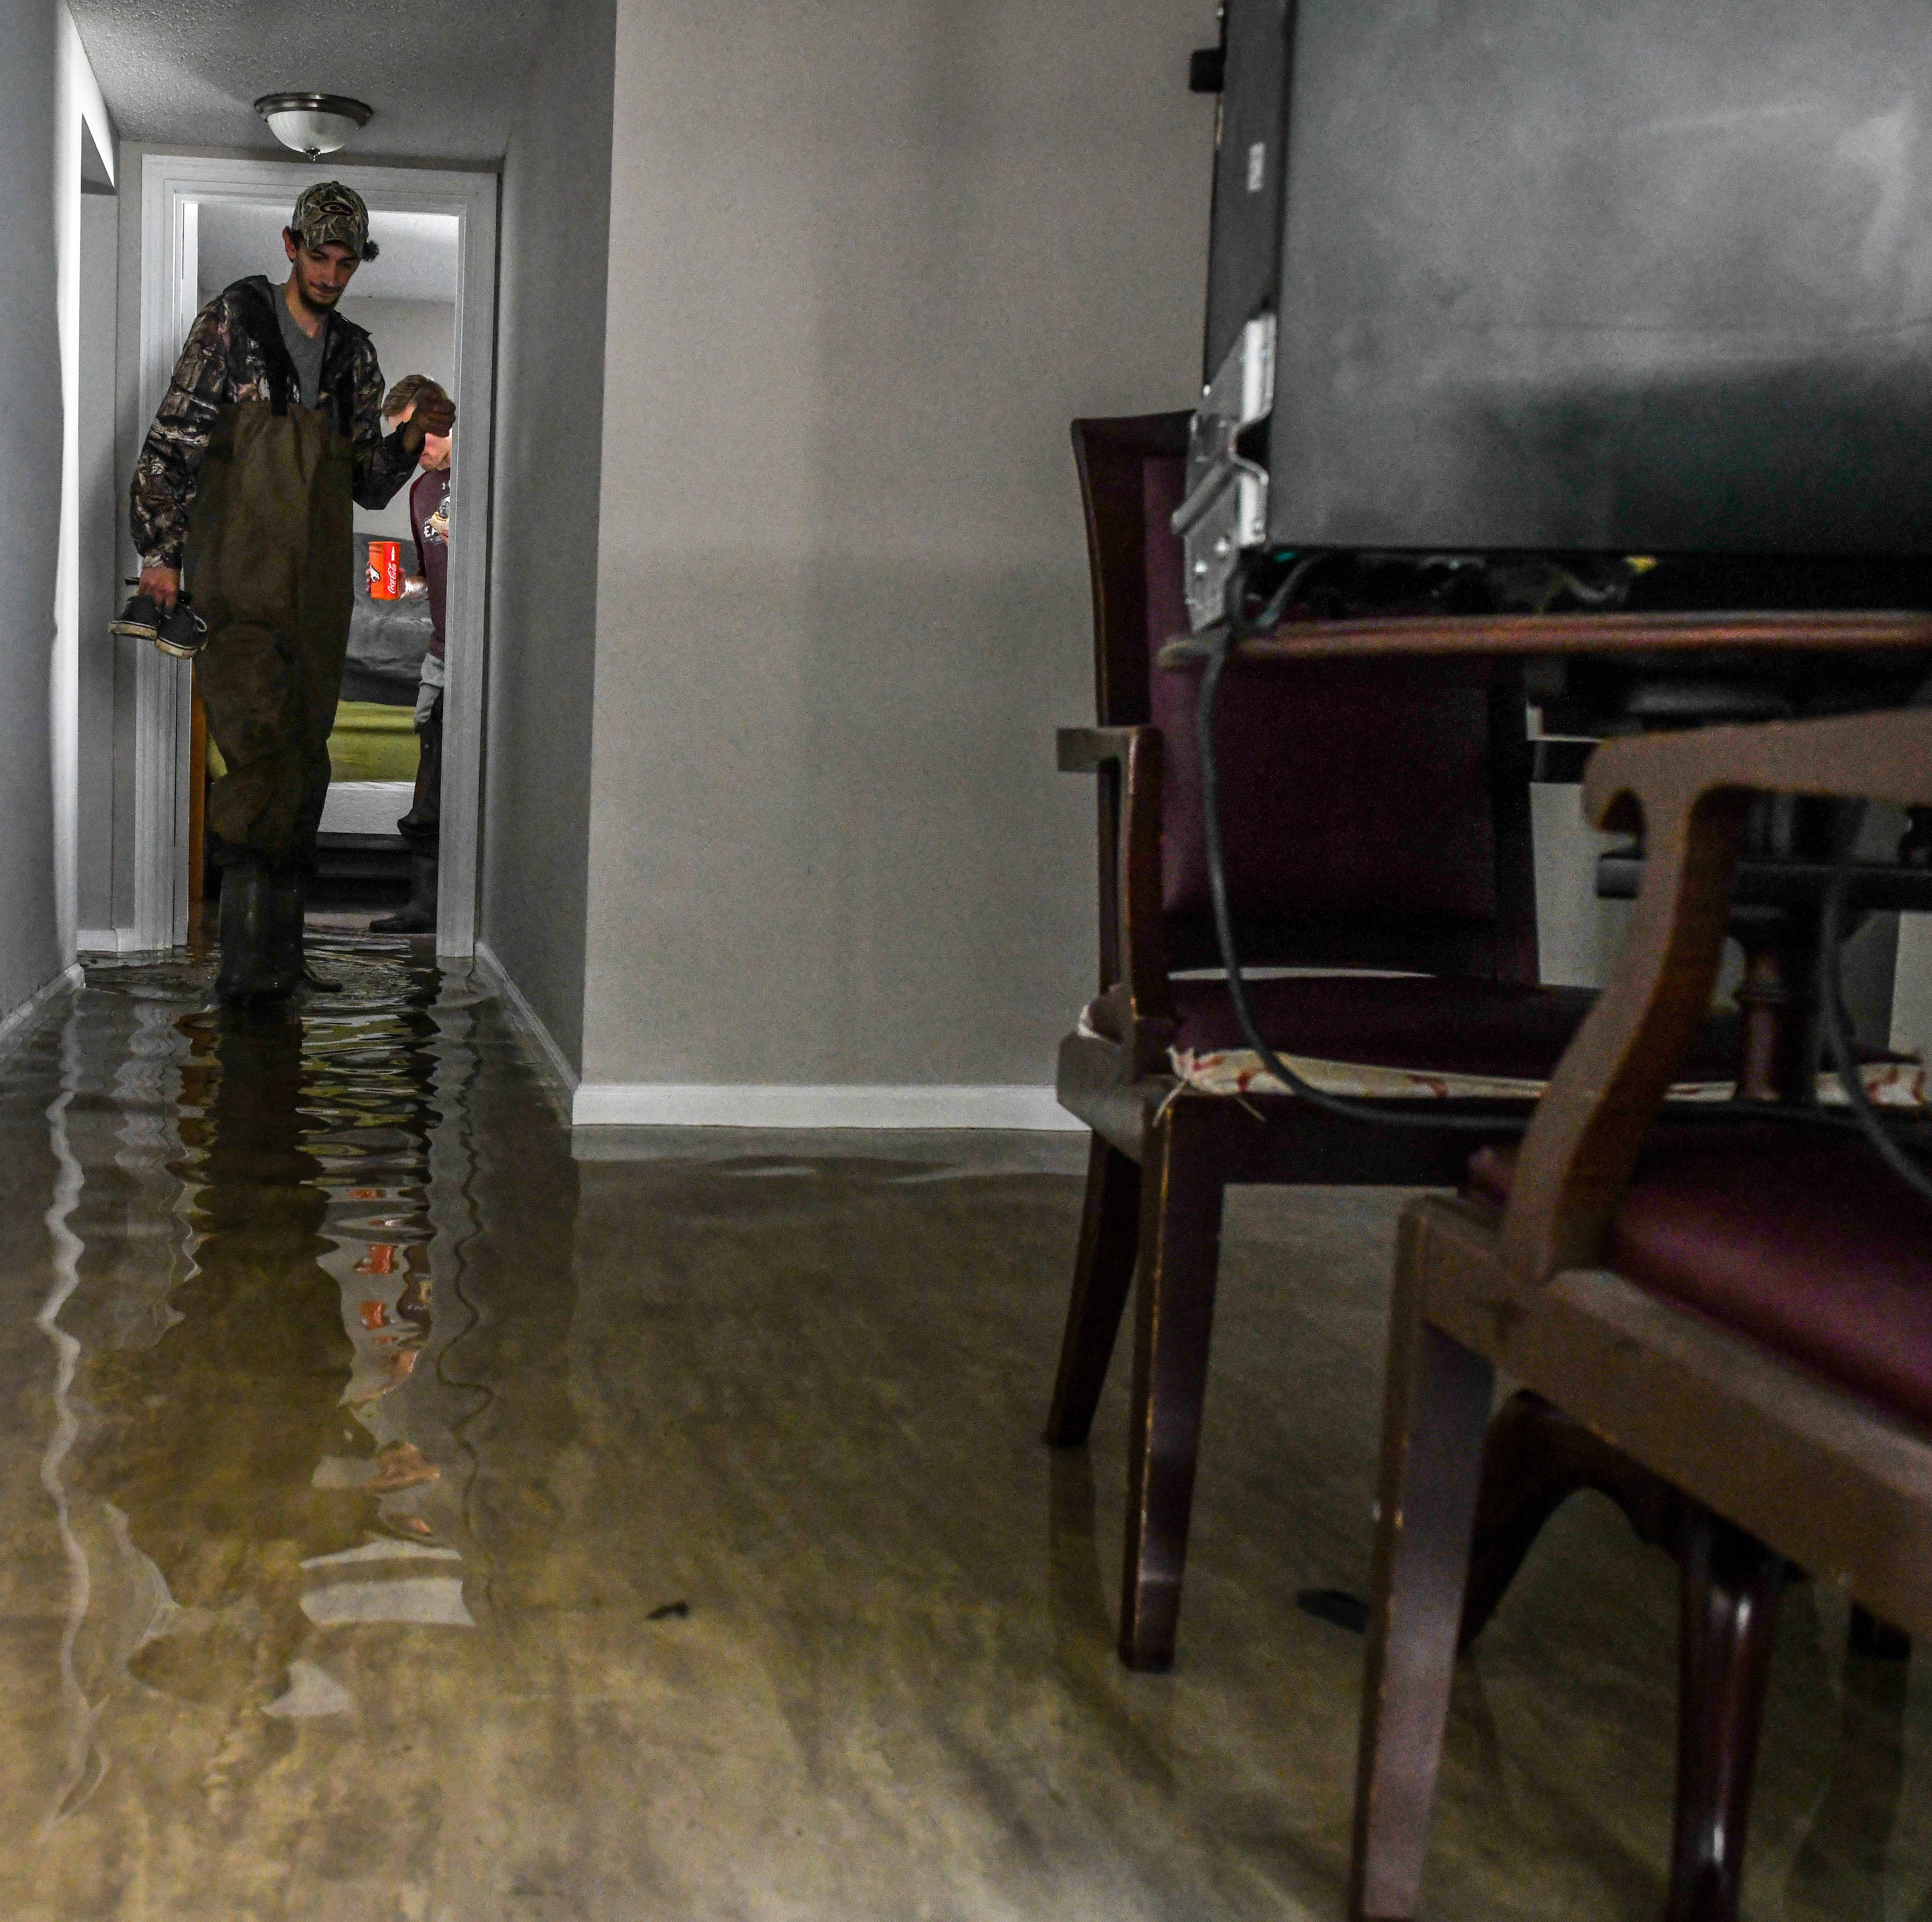 Flooding after Michael: 'I'm all kinds of stuck'